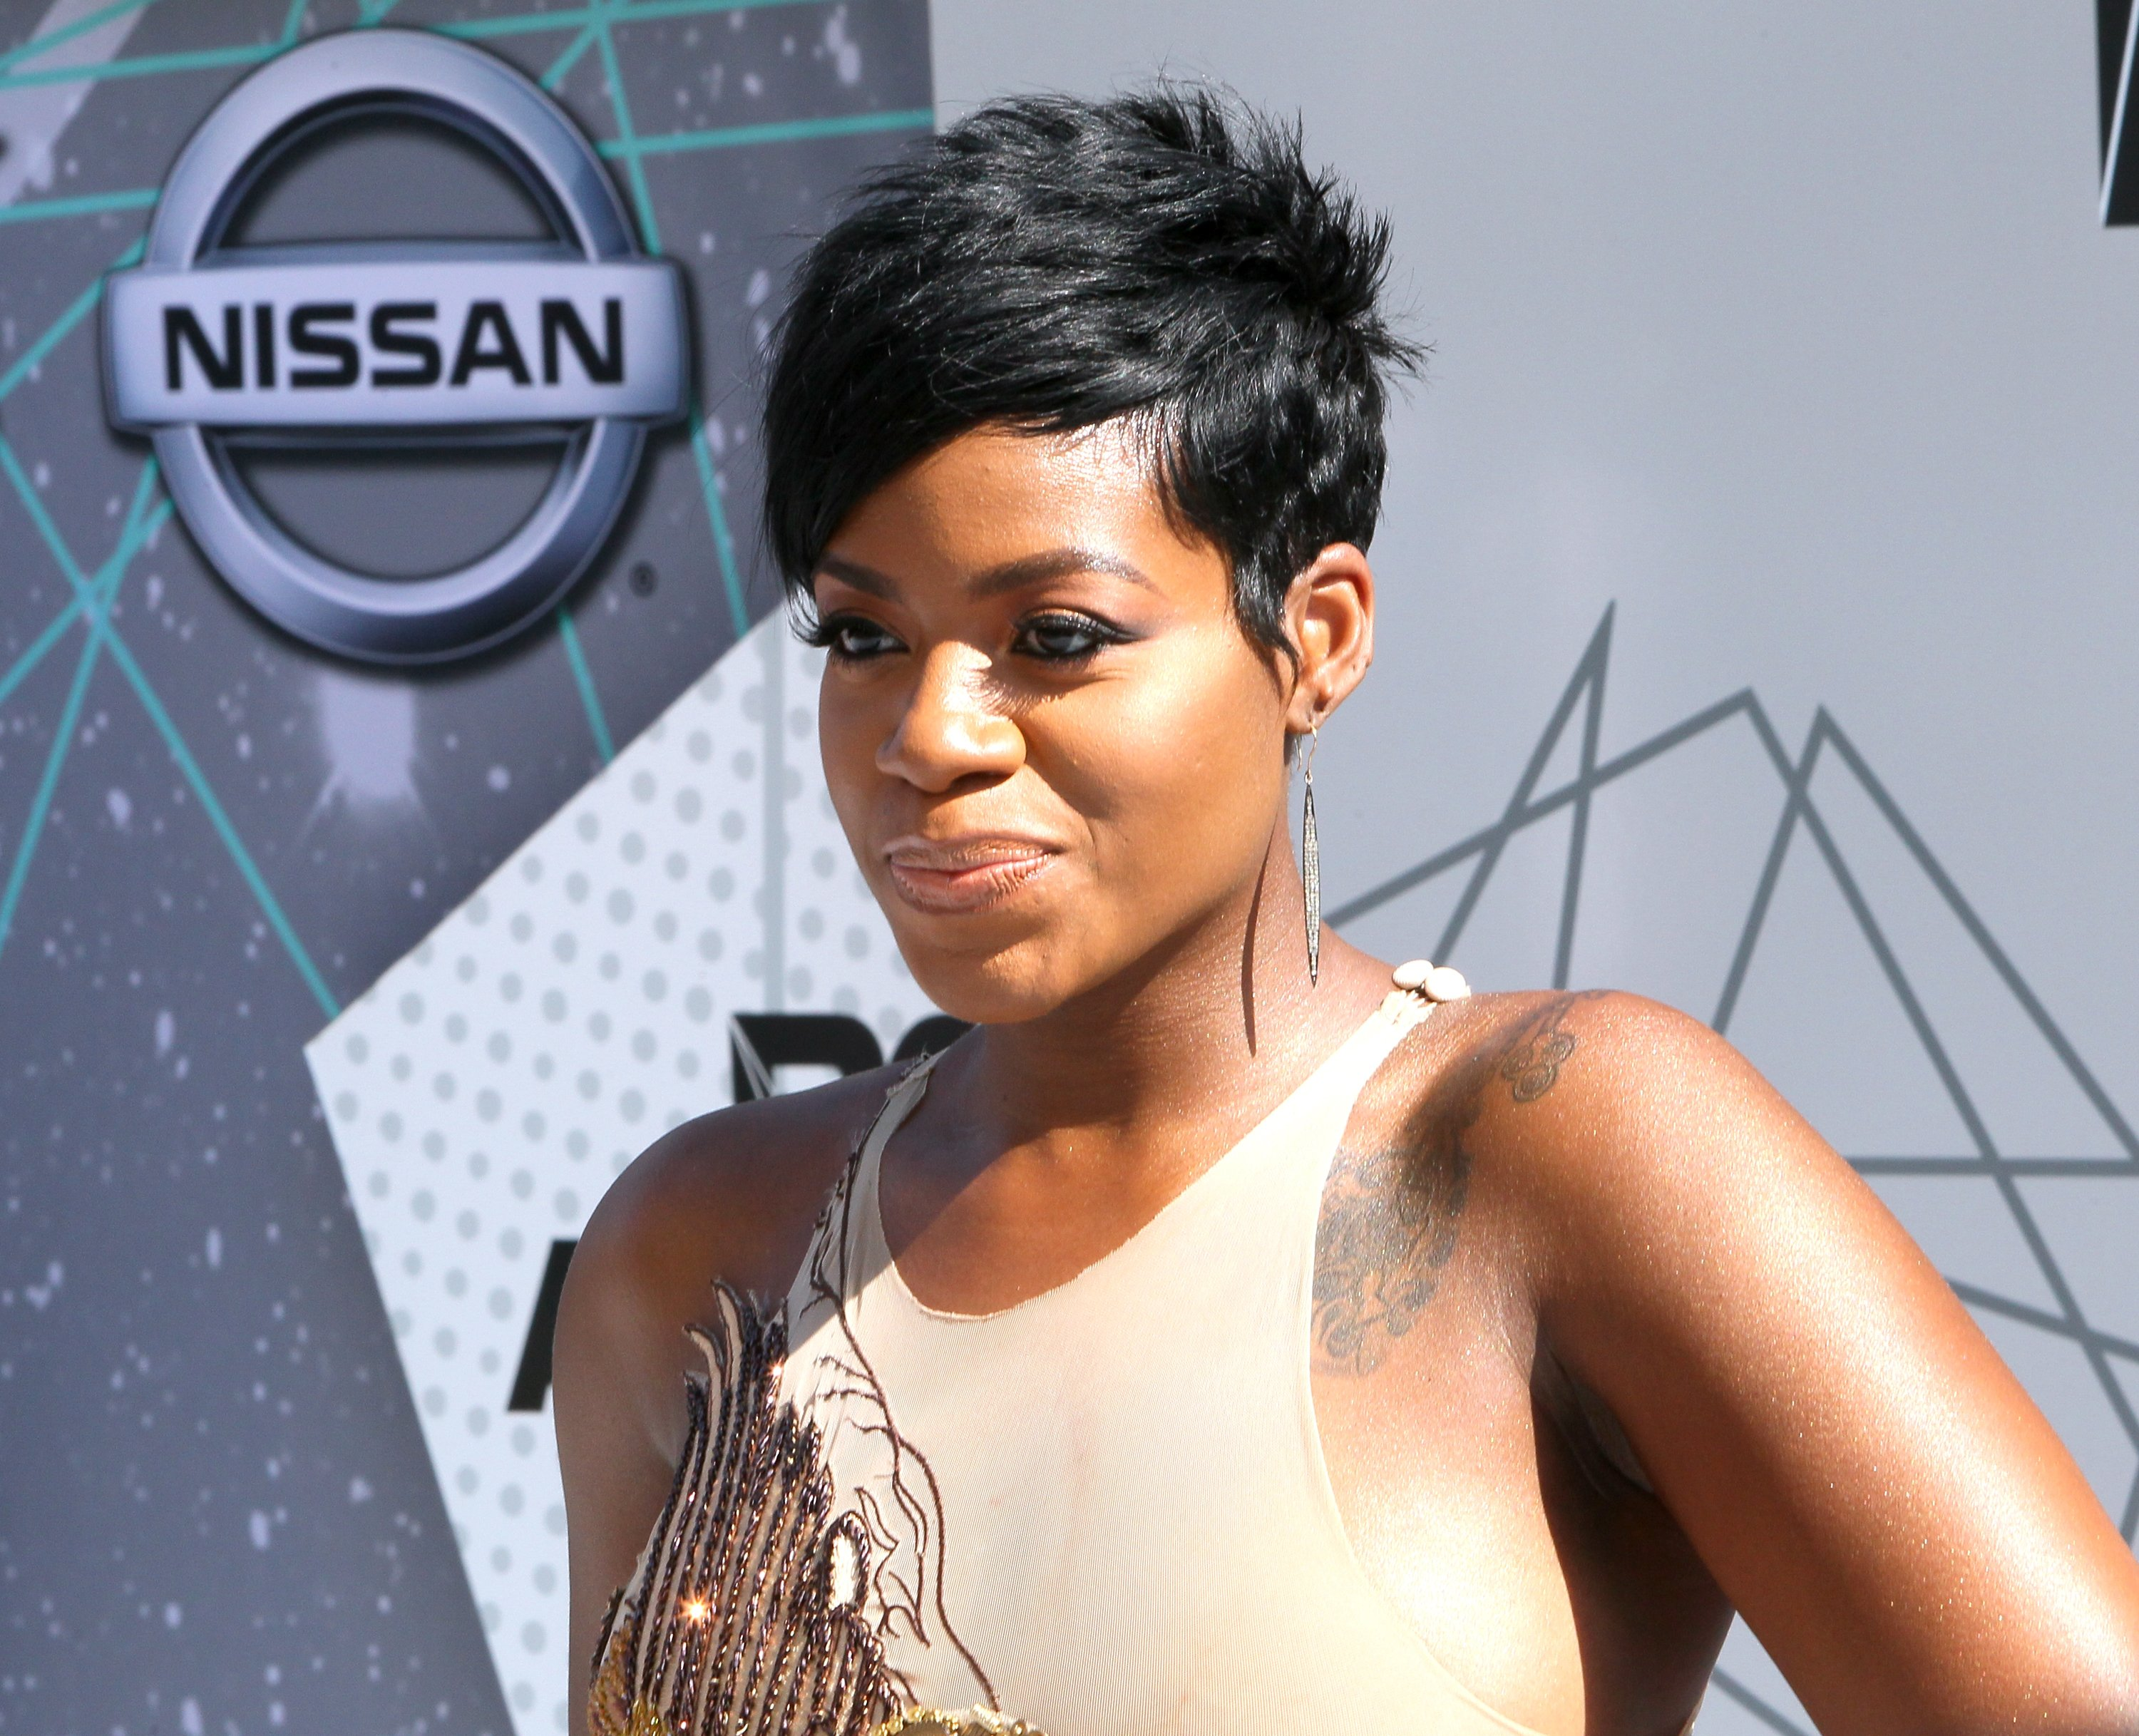 Singer Fantasia Barrino attends the 2016 BET Awards at Microsoft Theater on June 26, 2016   Photo: Getty Images